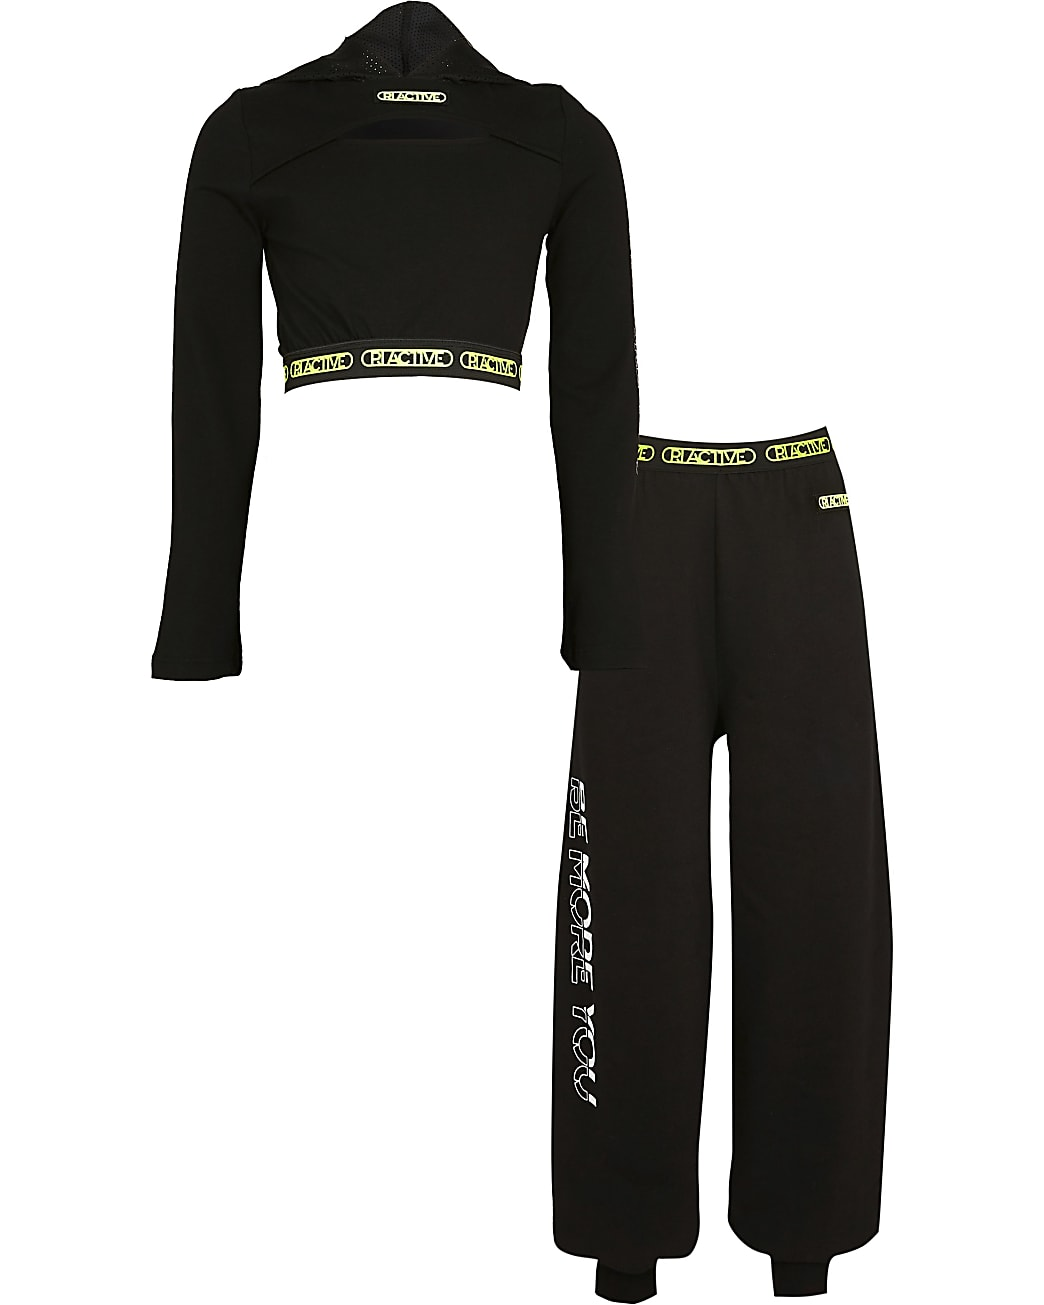 Age 13+ girls black RI active hoodie outfit